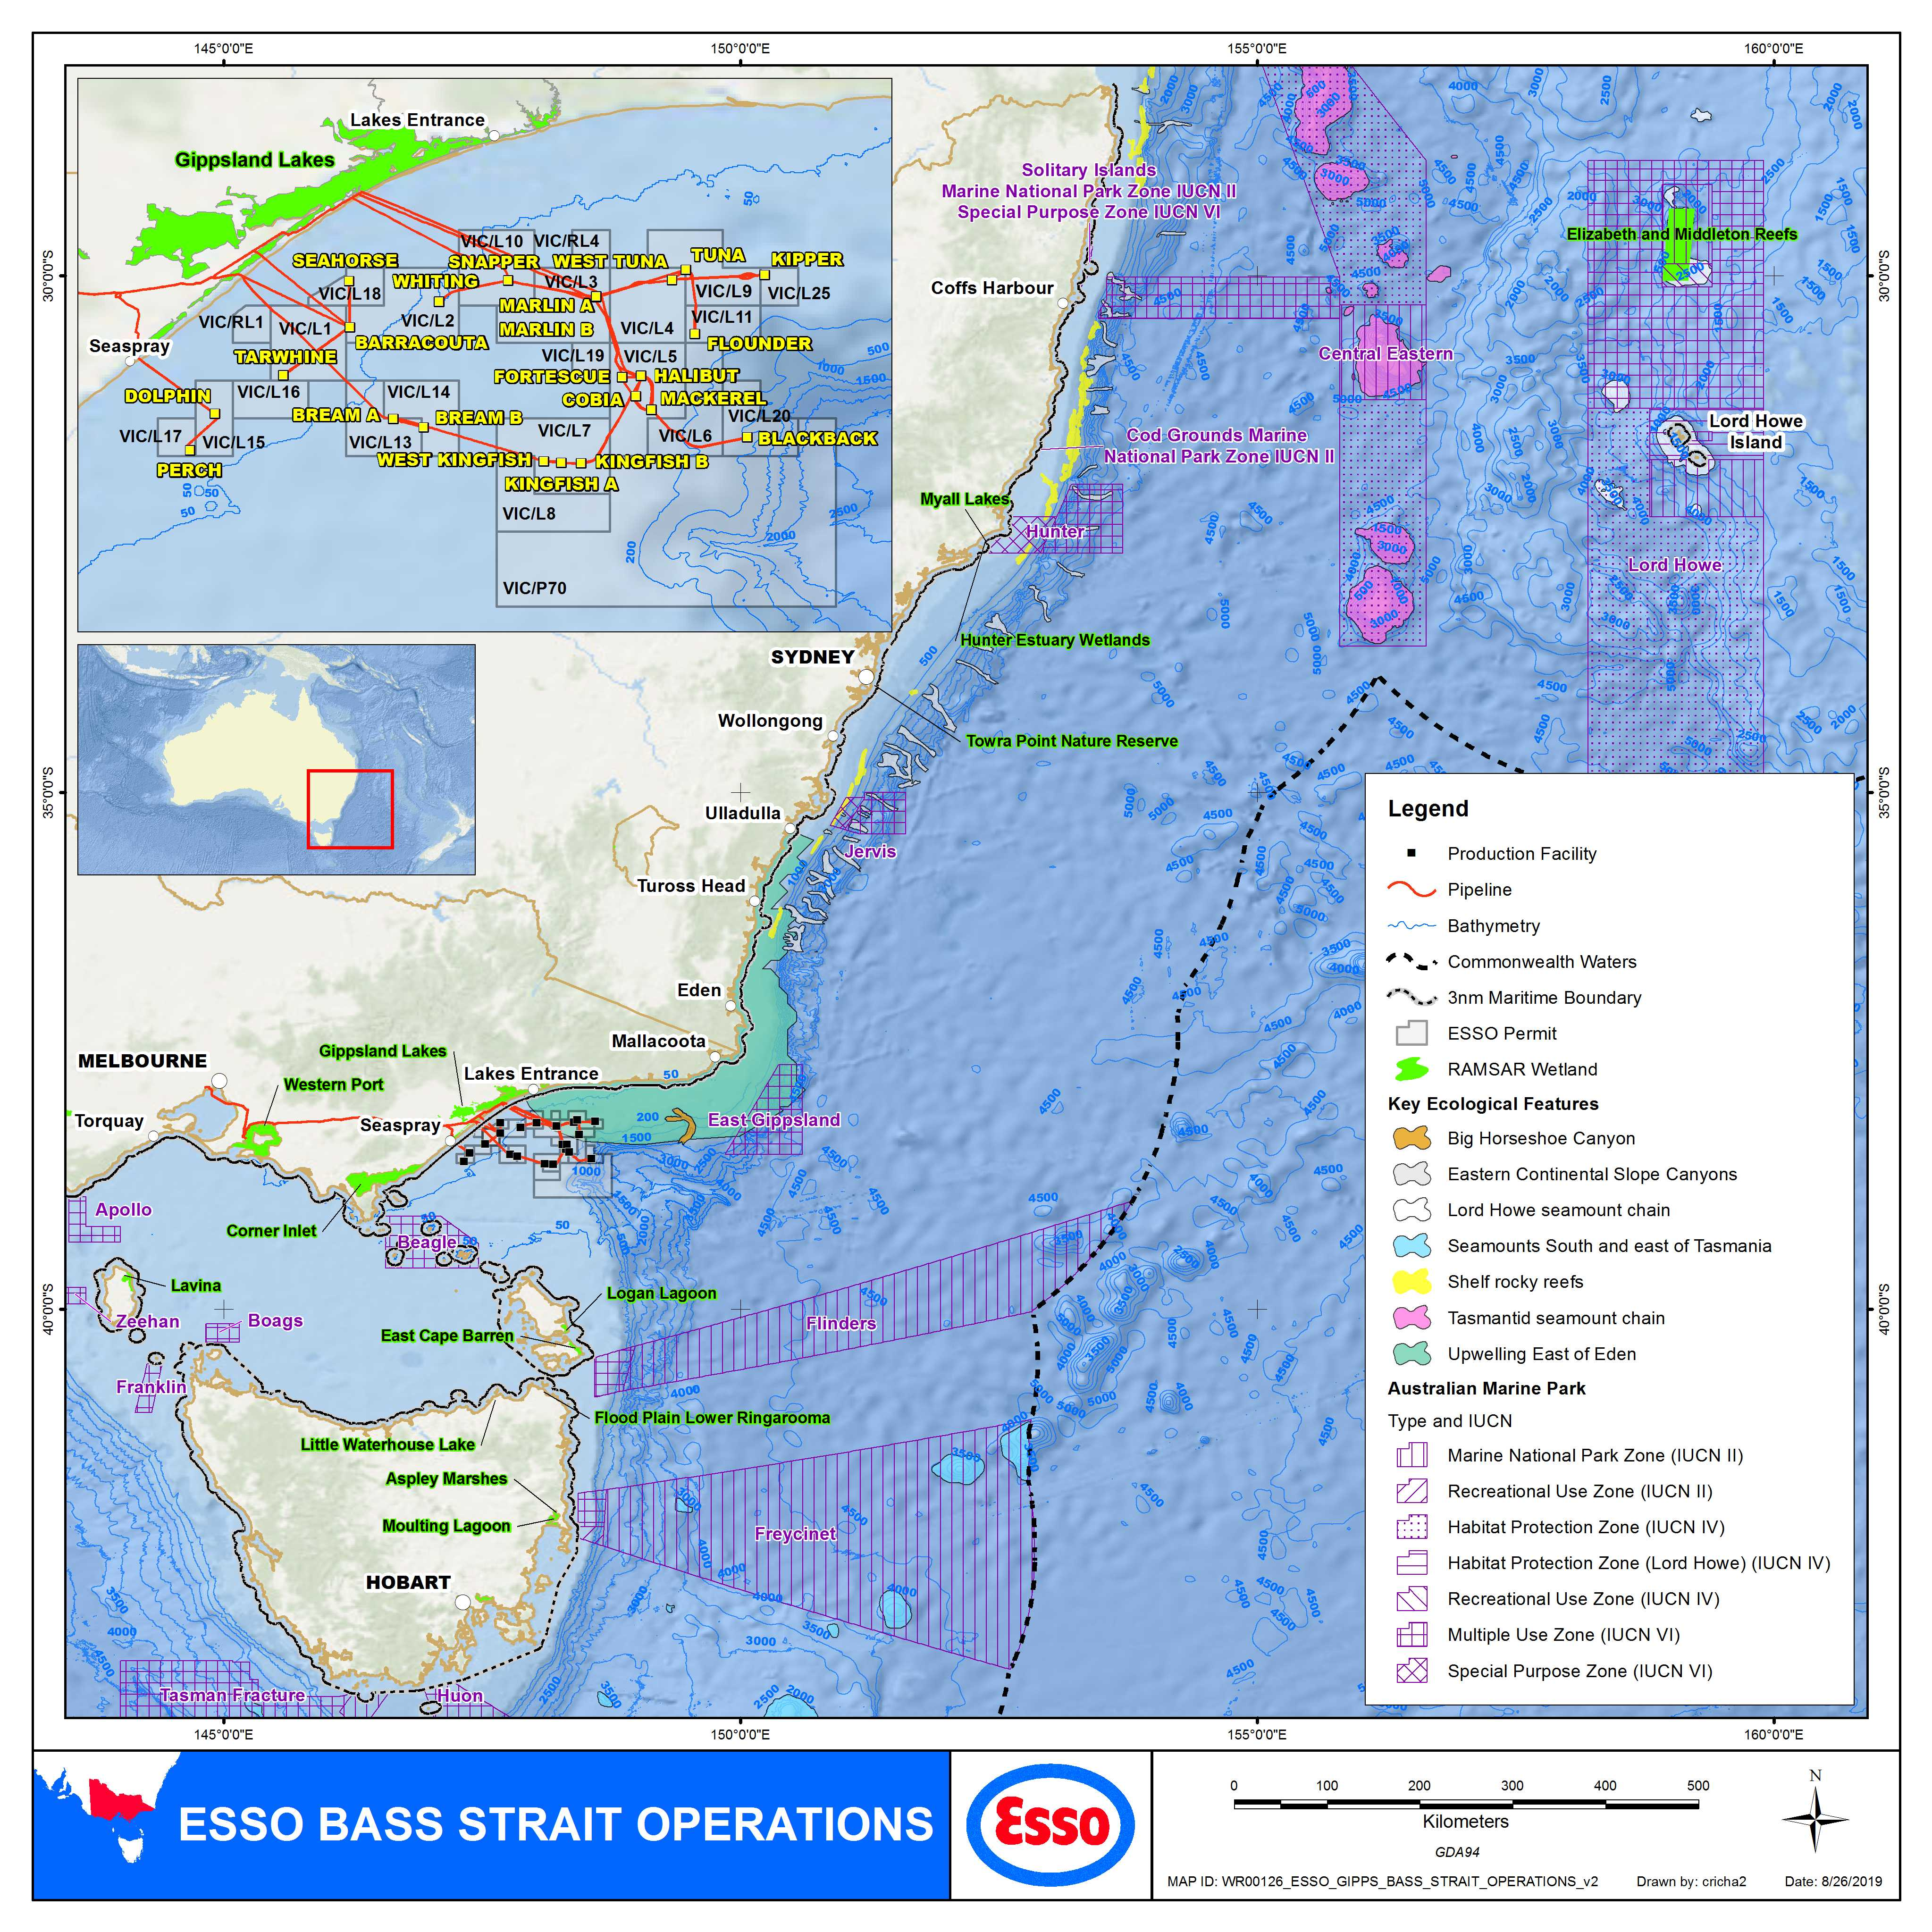 Location map - Activity: Bass Strait Operations (refer to description)